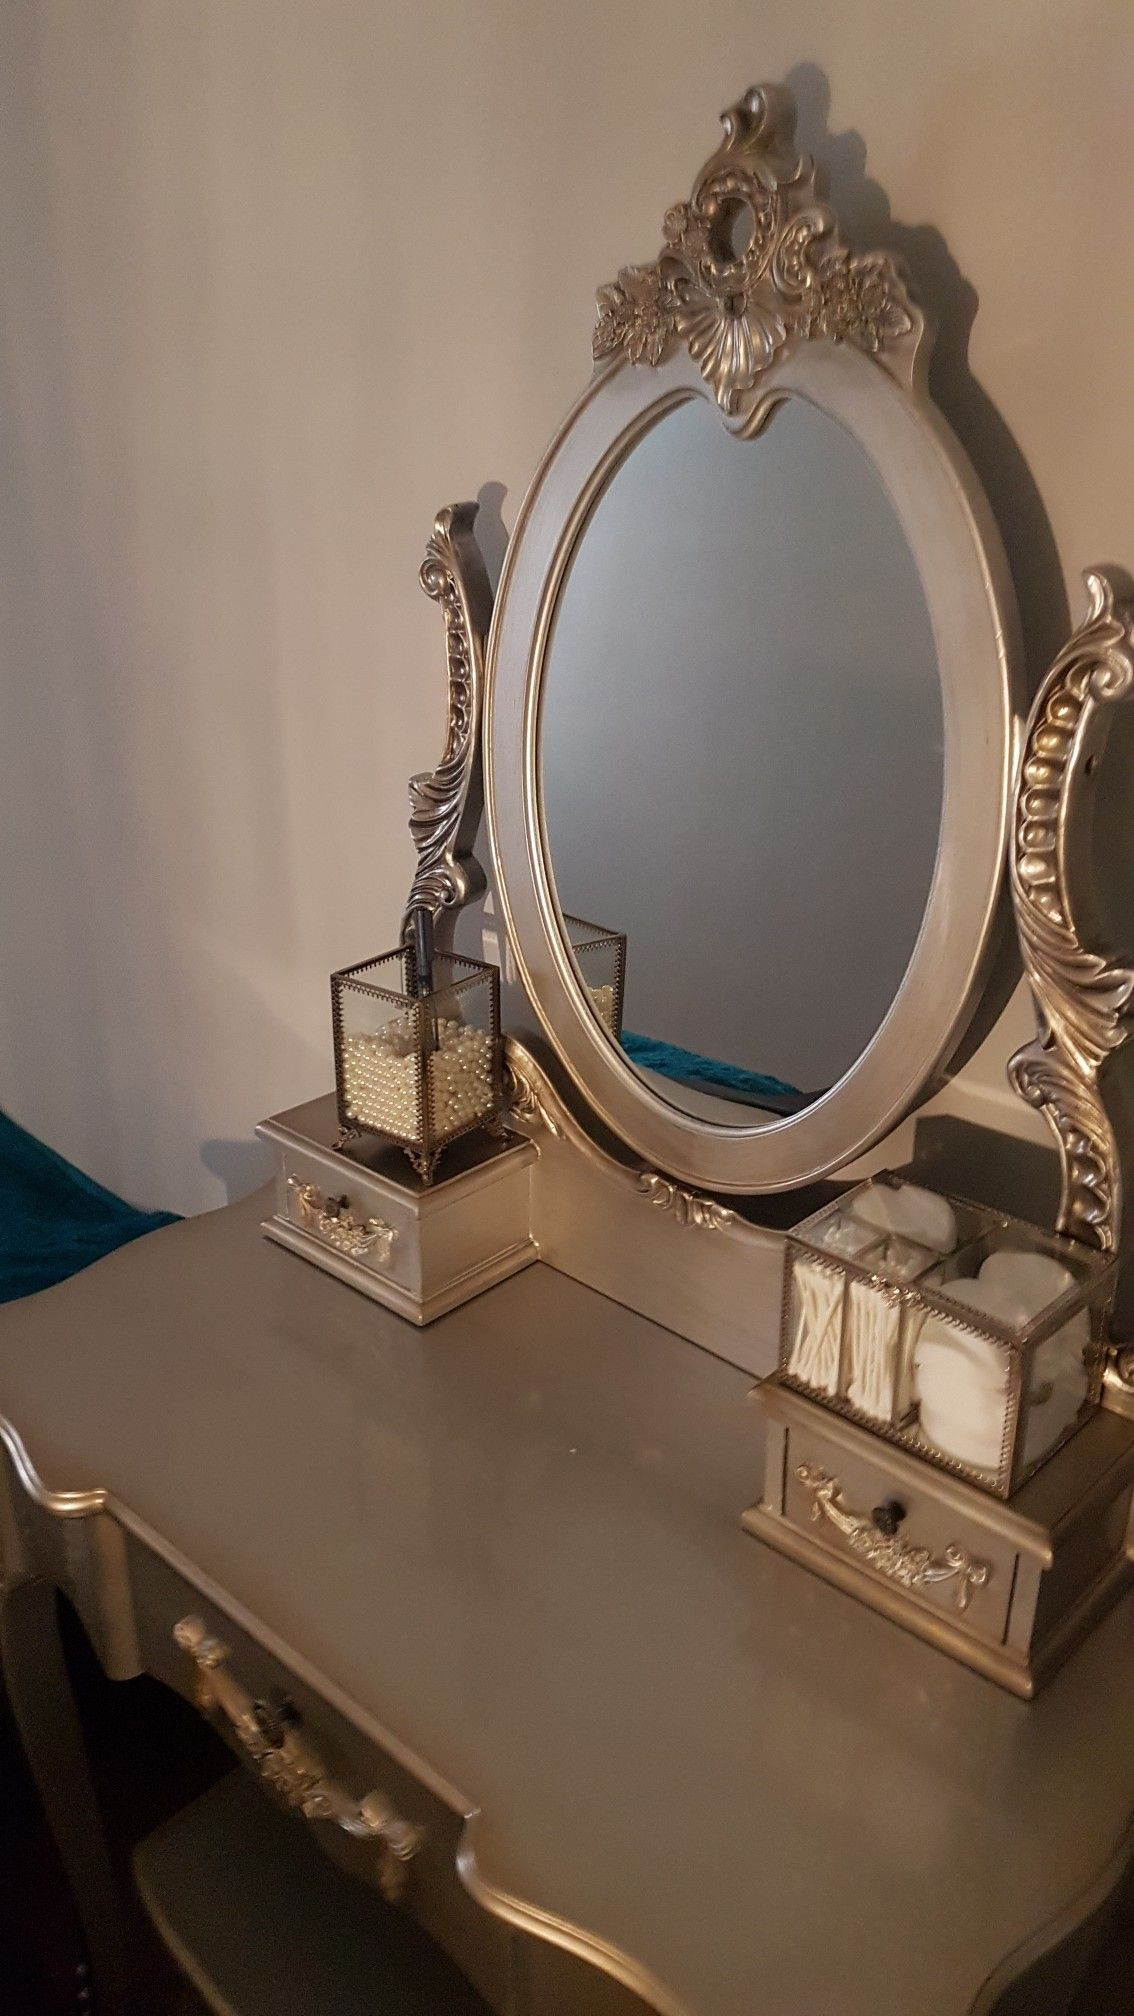 Pin by Pip Lloyd on Small teenage bedroom   Small teenage ... on Mirrors For Teenage Bedroom  id=36556